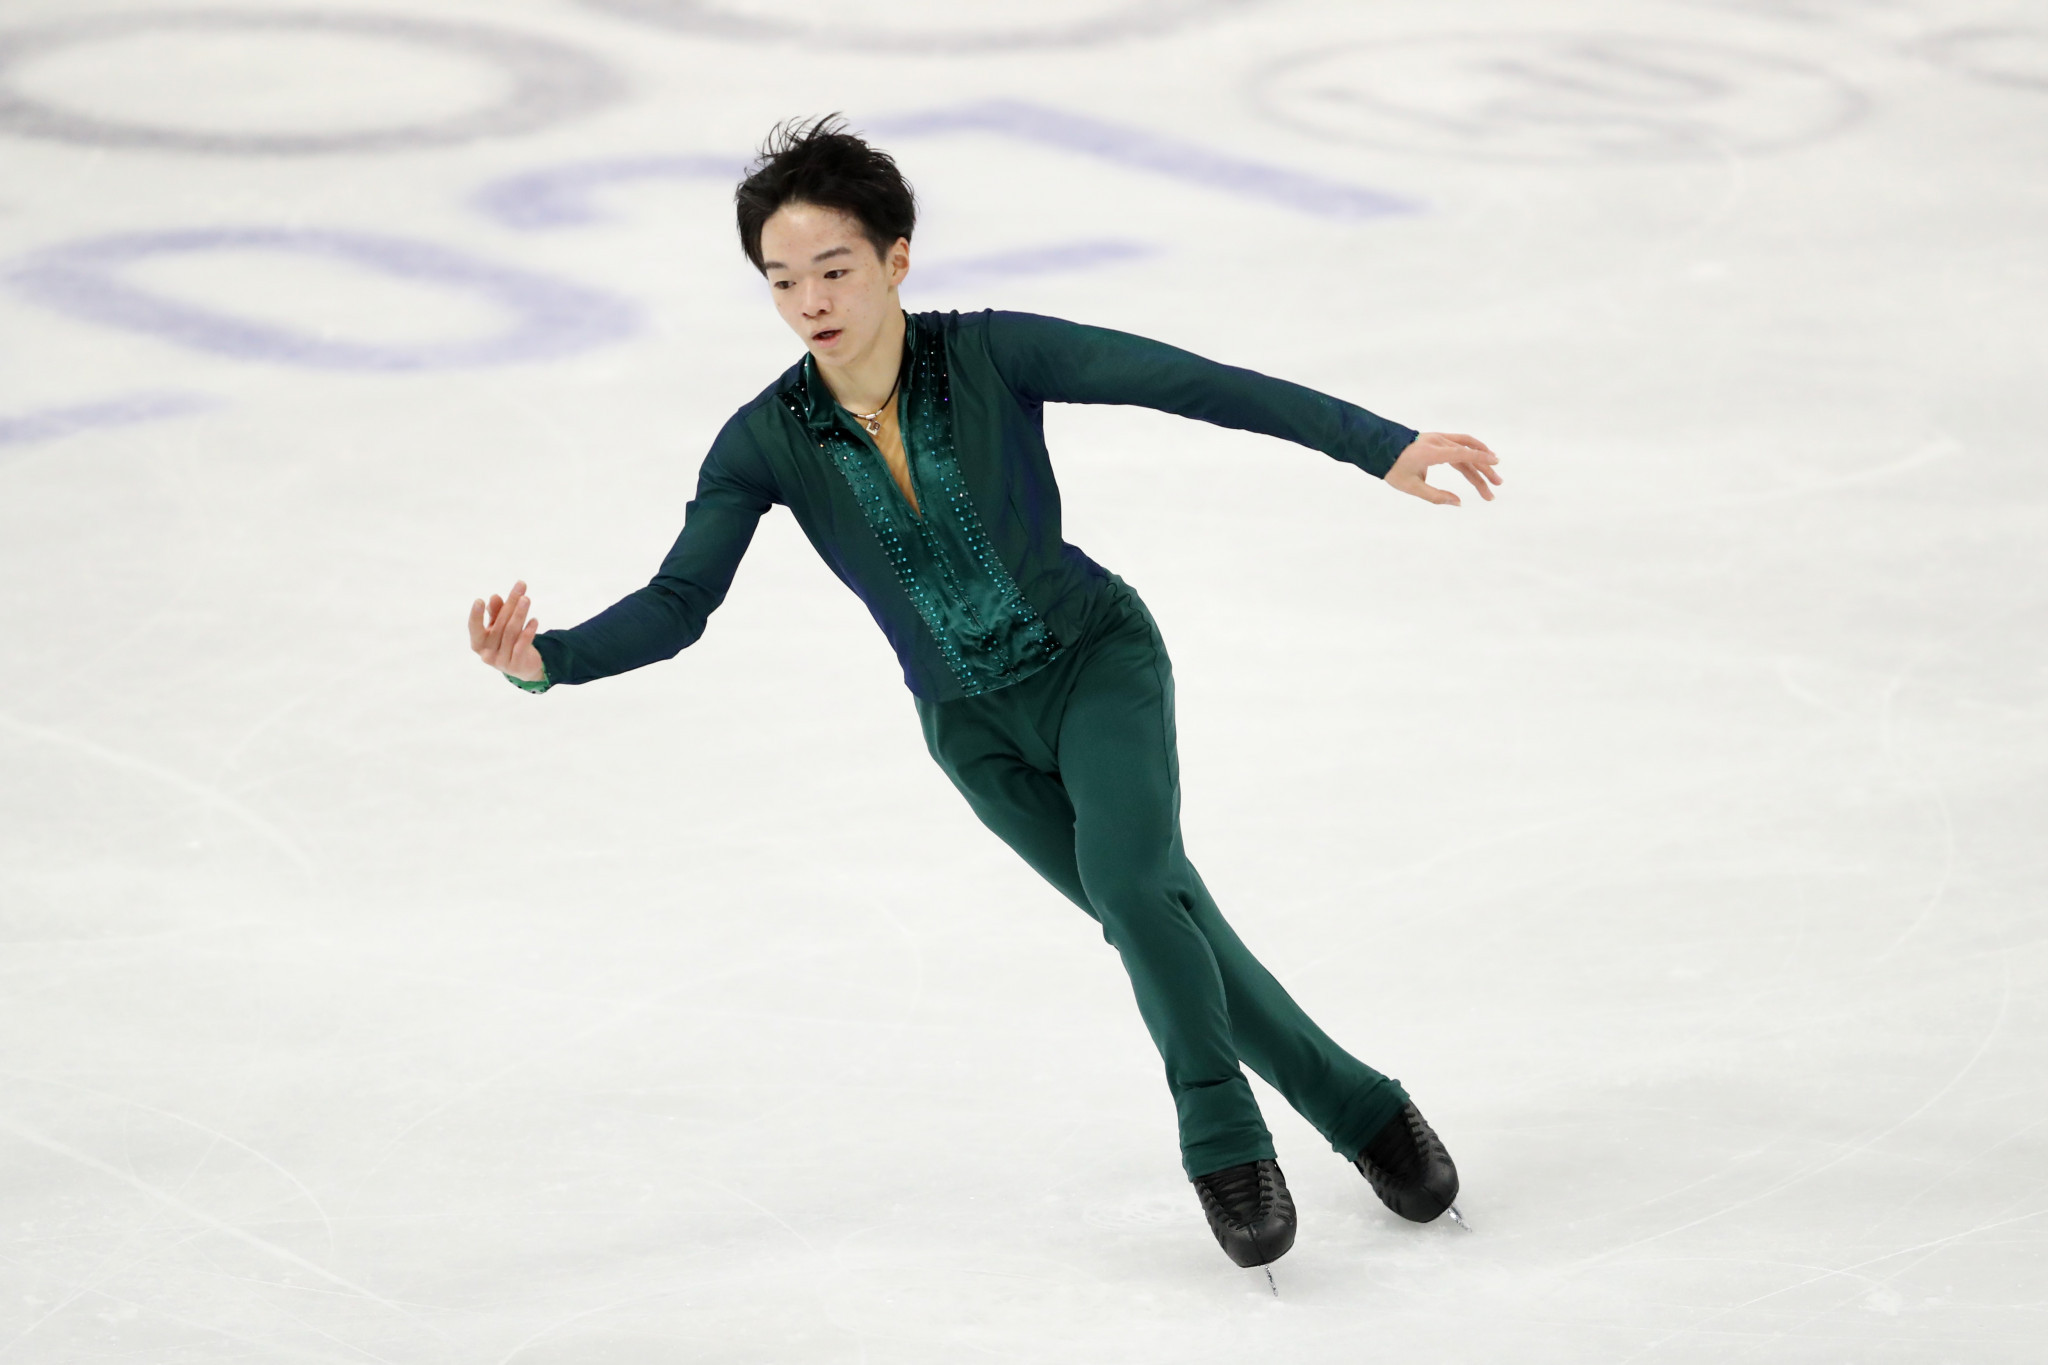 Japanese pair lead men's and women's standings at Beijing 2022 figure skating test event